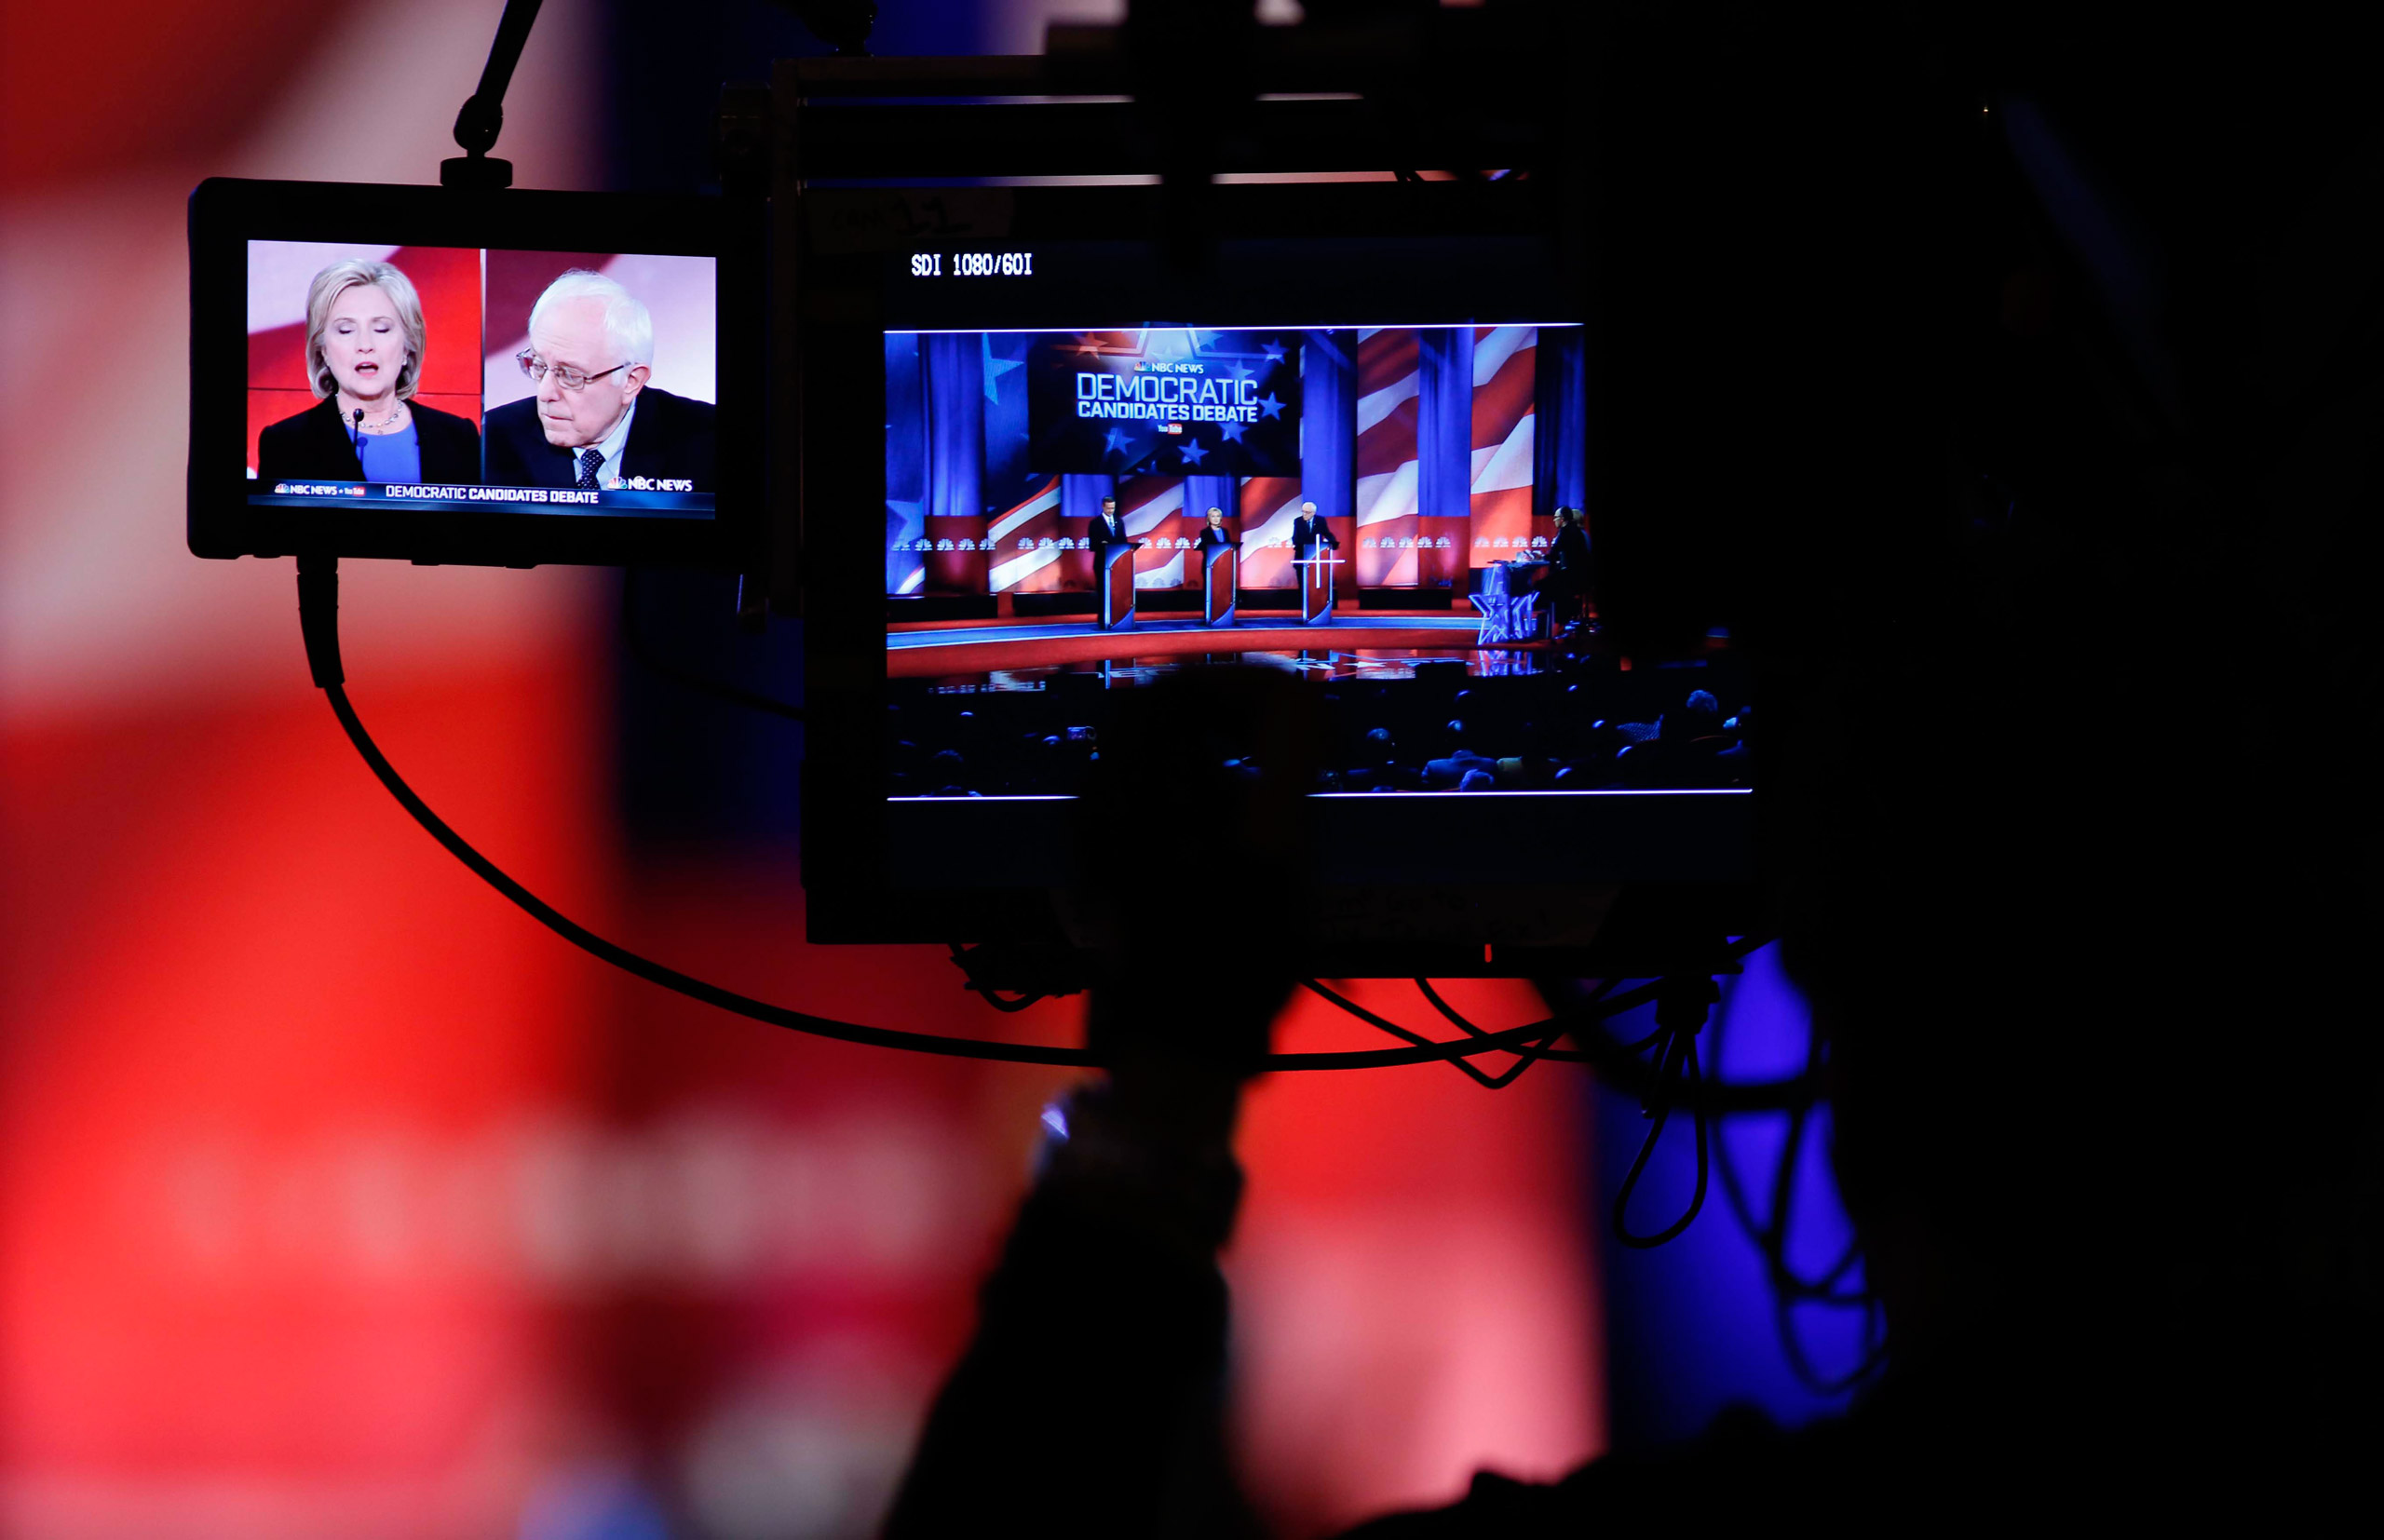 A camera man focuses on Democratic presidential candidates Hillary Clinton and Sen. Bernie Sanders as they participate in the NBC - YouTube Democratic presidential debate at the Gaillard Center in Charleston, S.C. on Jan. 17, 2016.